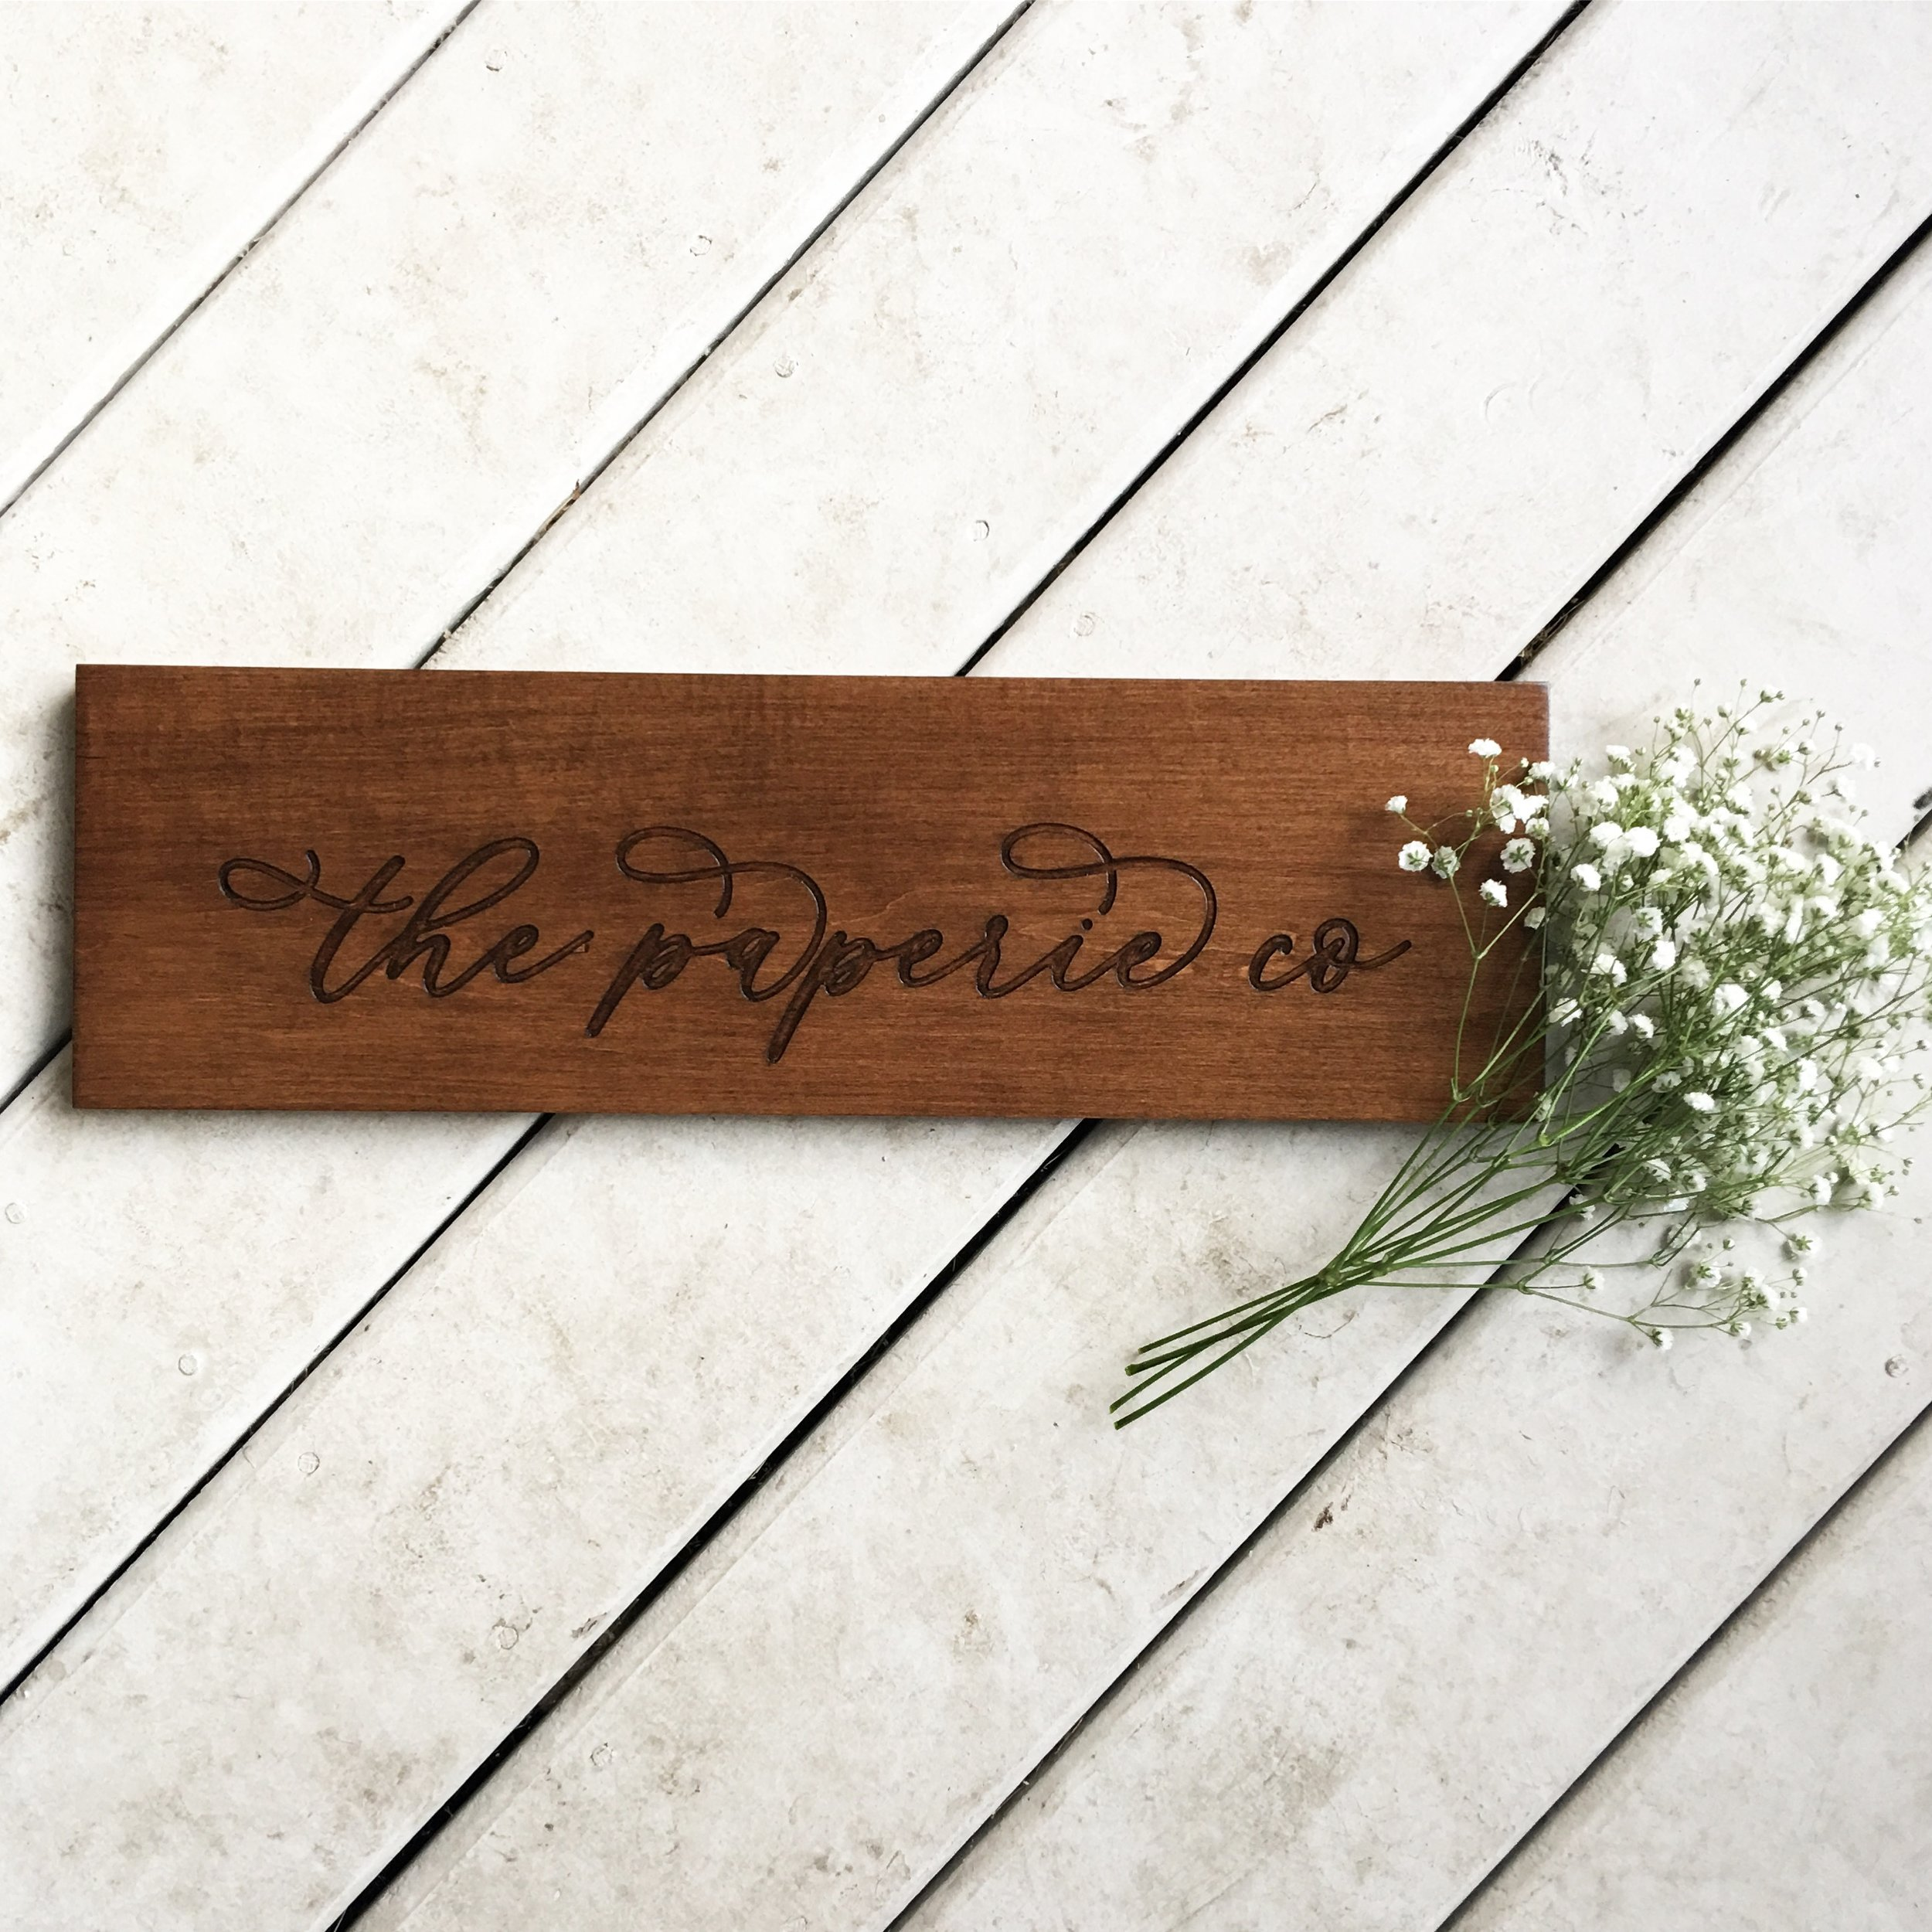 The Paperie Co